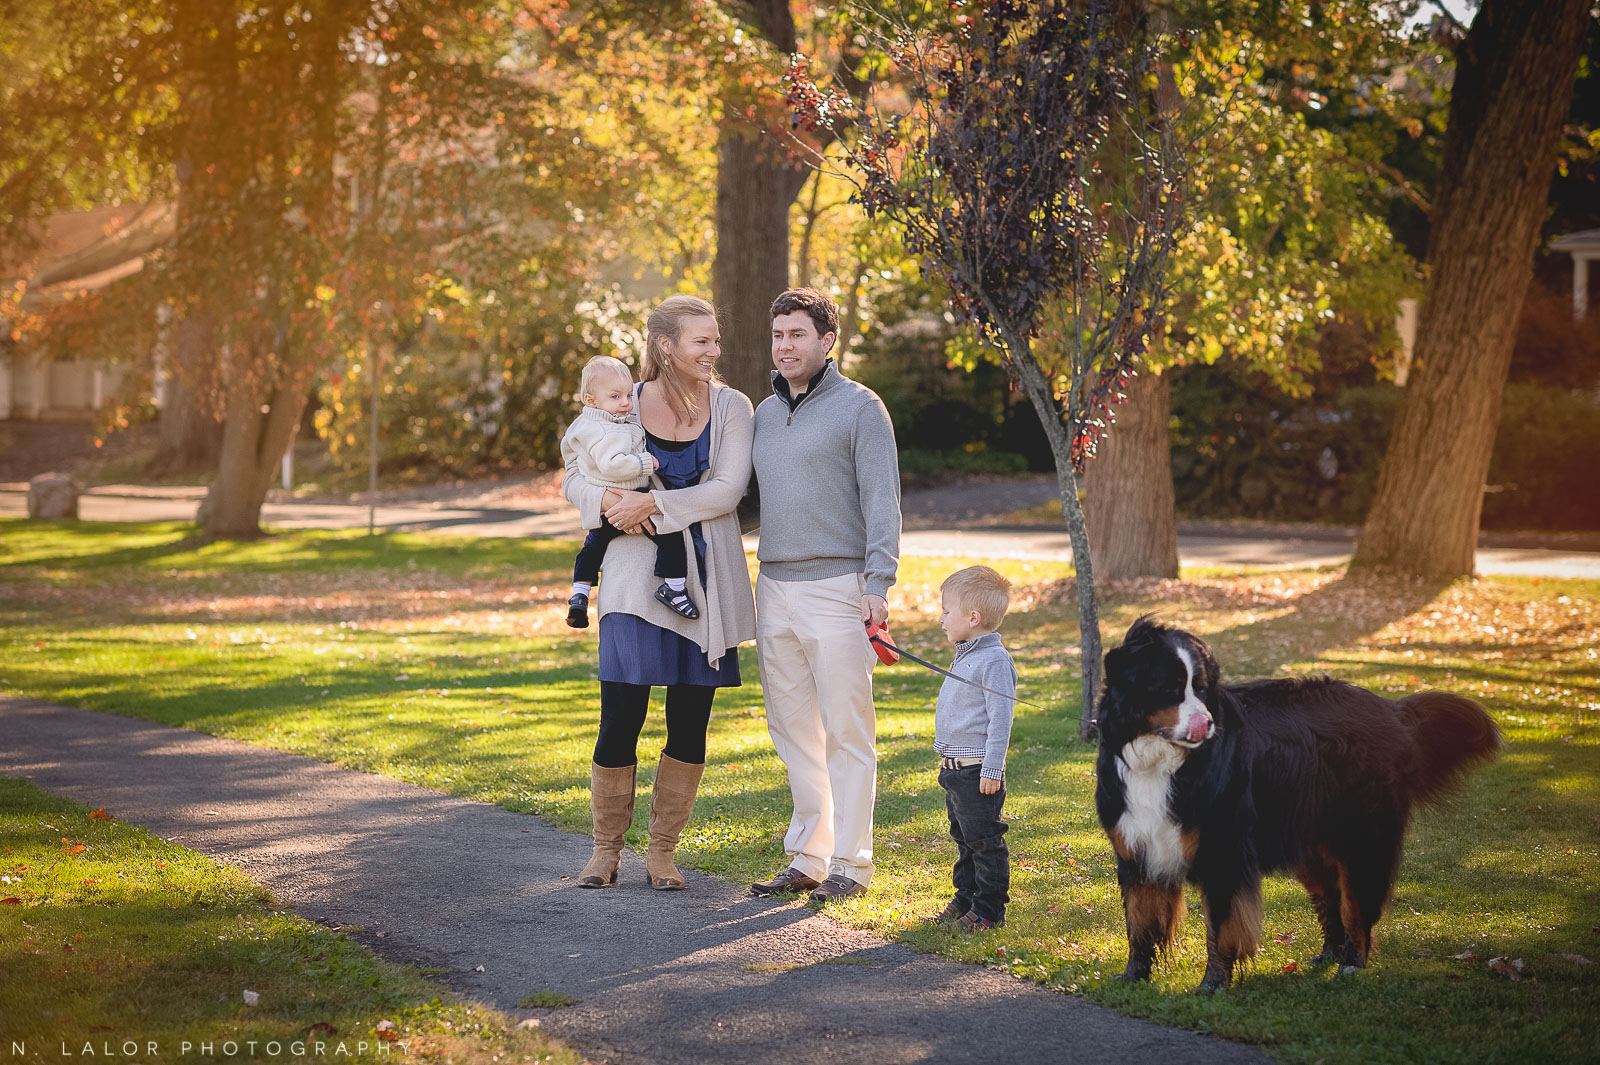 nlalor-photography-2014-styled-family-life-binney-park-old-greenwich-fall-7.jpg